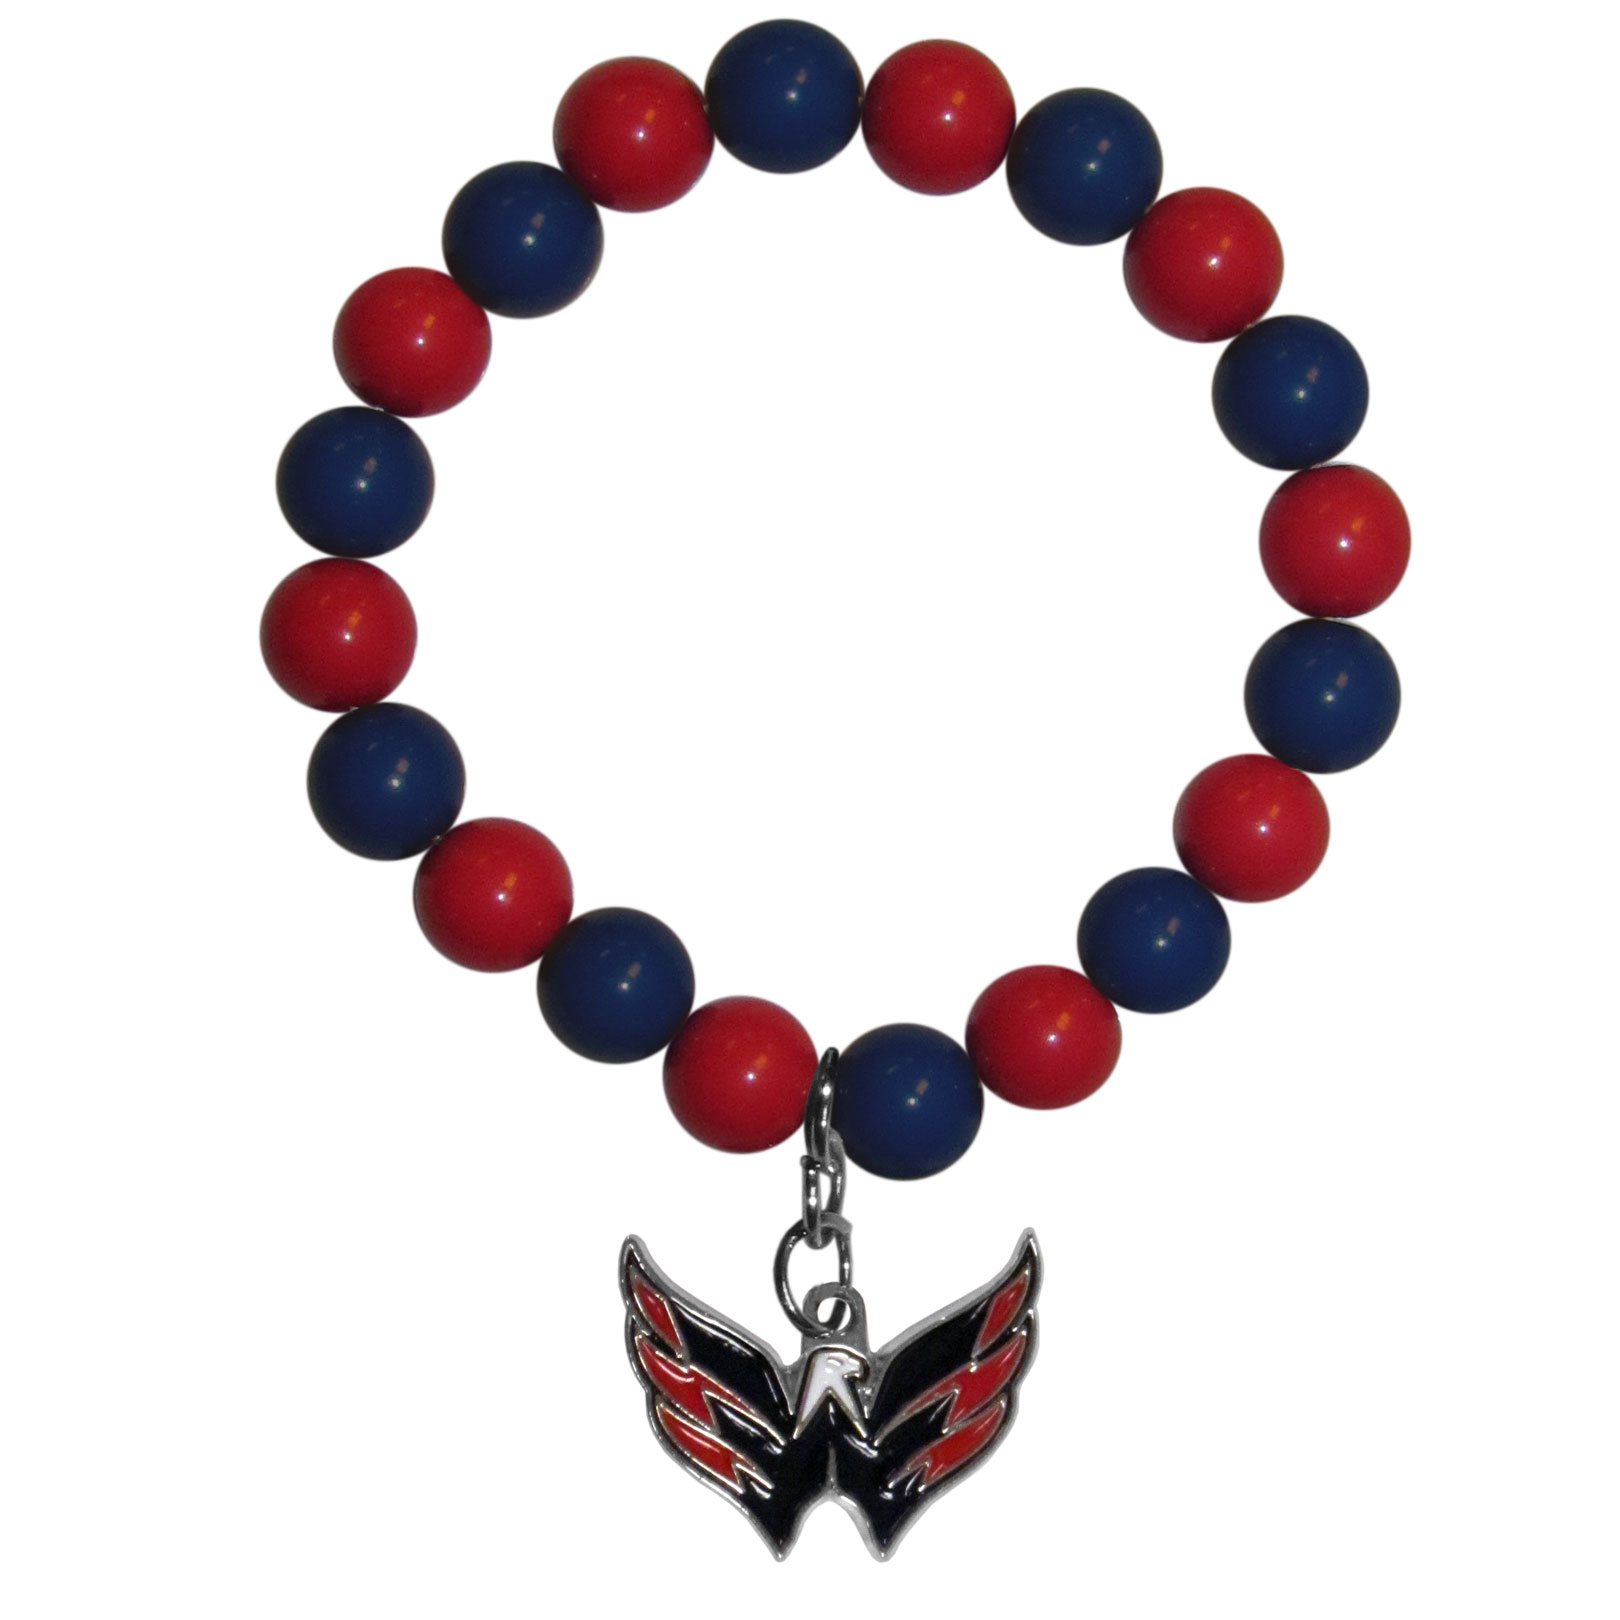 Washington Capitals® Fan Bead Bracelet - Flash your Washington Capitals® spirit with this bright stretch bracelet. This new bracelet features multicolored team beads on stretch cord with a nickel-free enameled chrome team charm. This bracelet adds the perfect pop of color to your game day accessories.